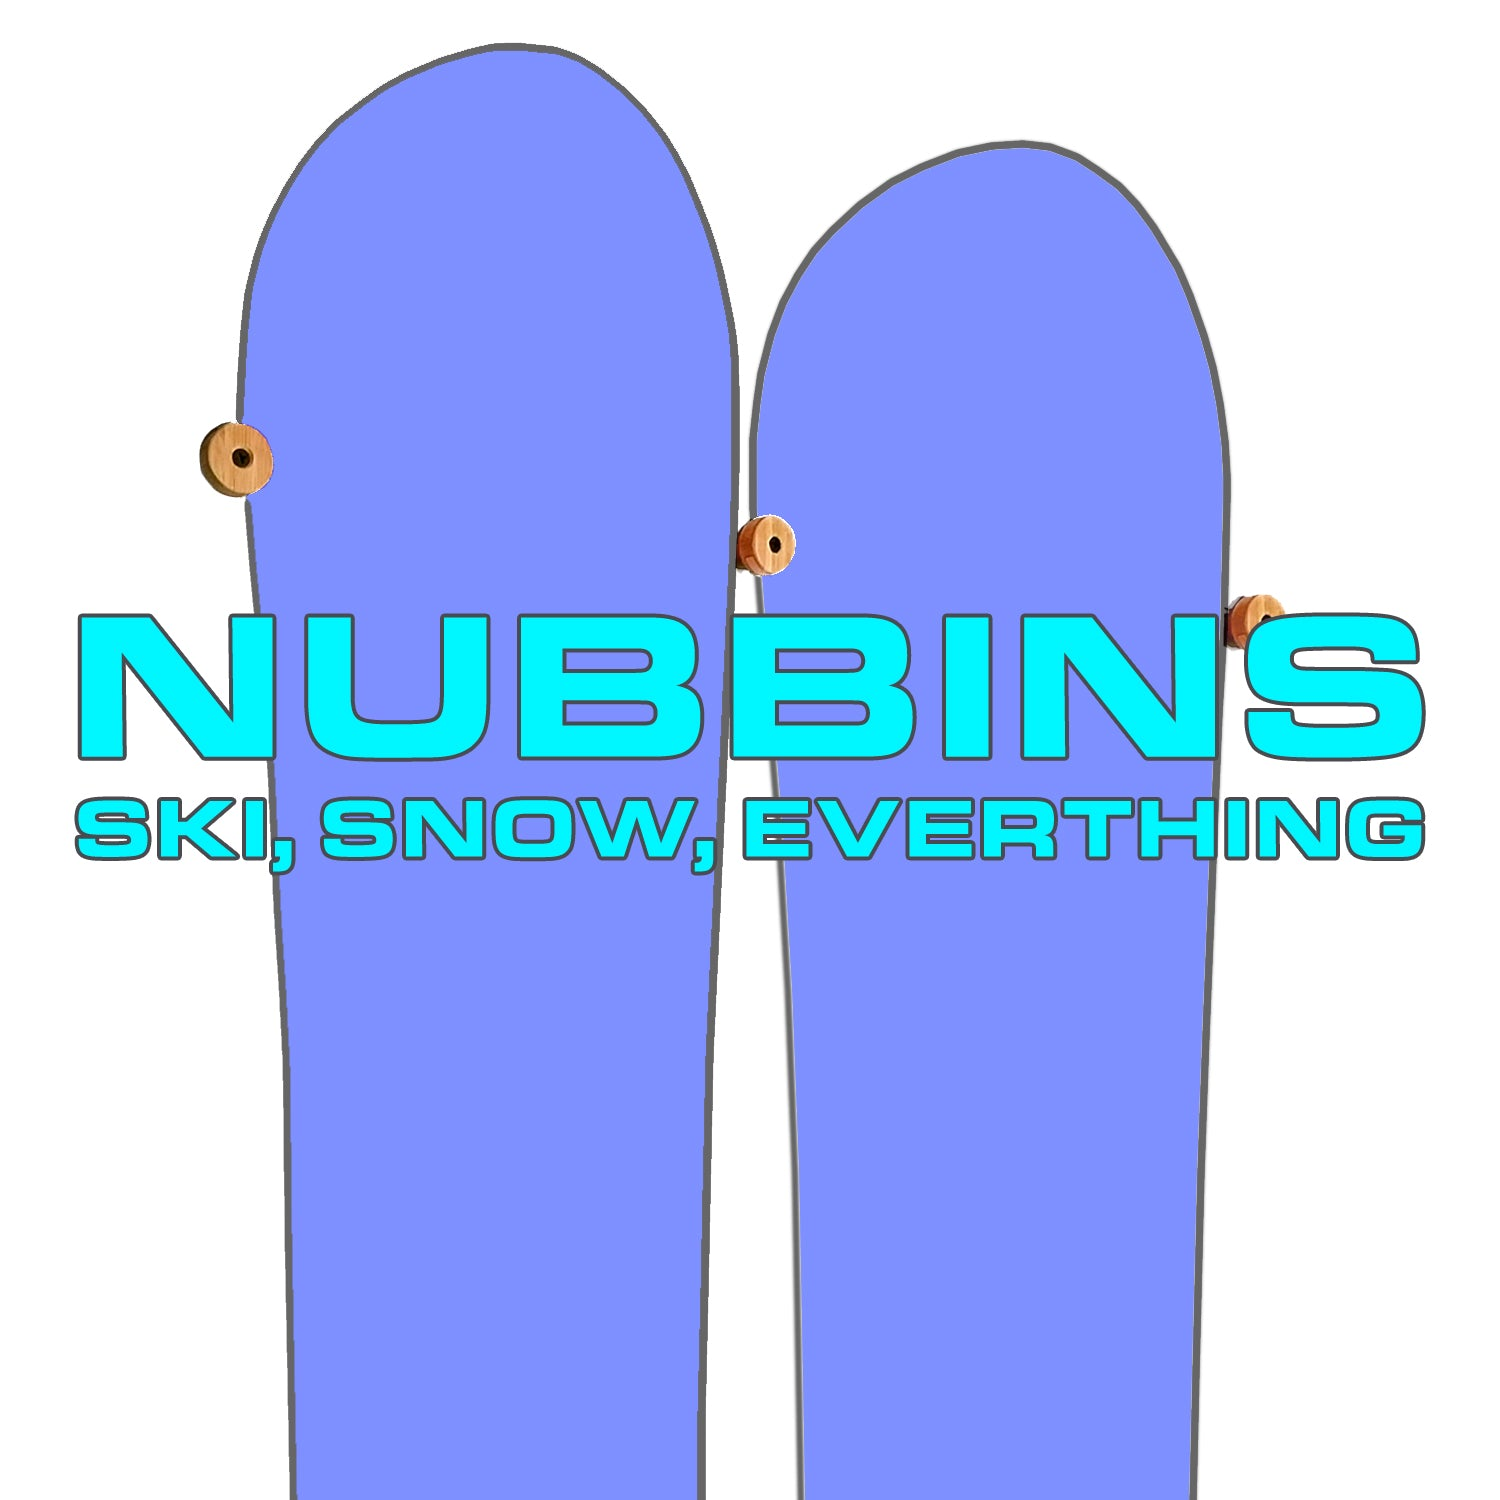 Nubbins - The Everything Rack